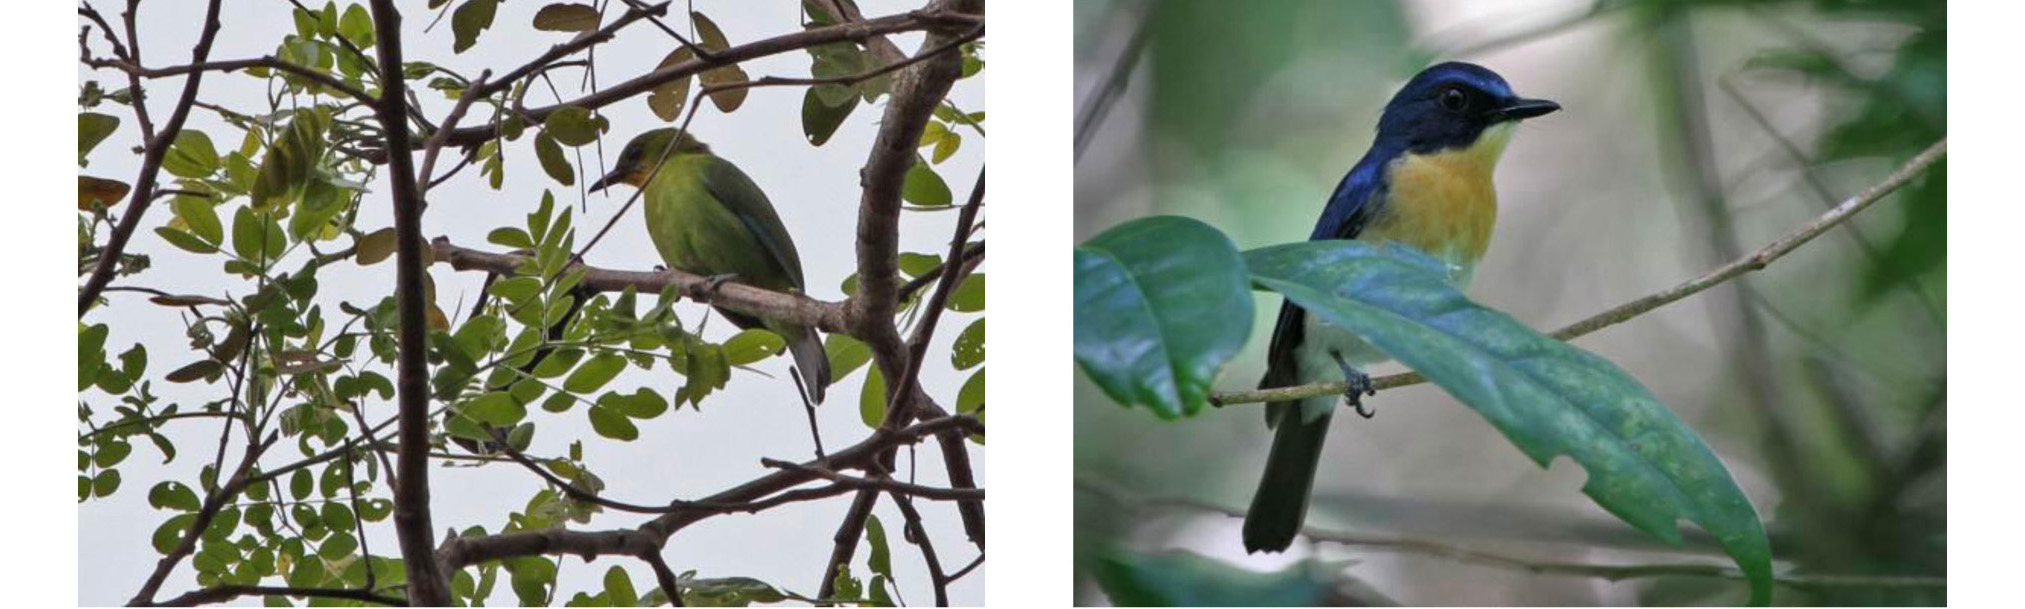 Yellow-throated Leafbird and Palawan Blue Flycatcher